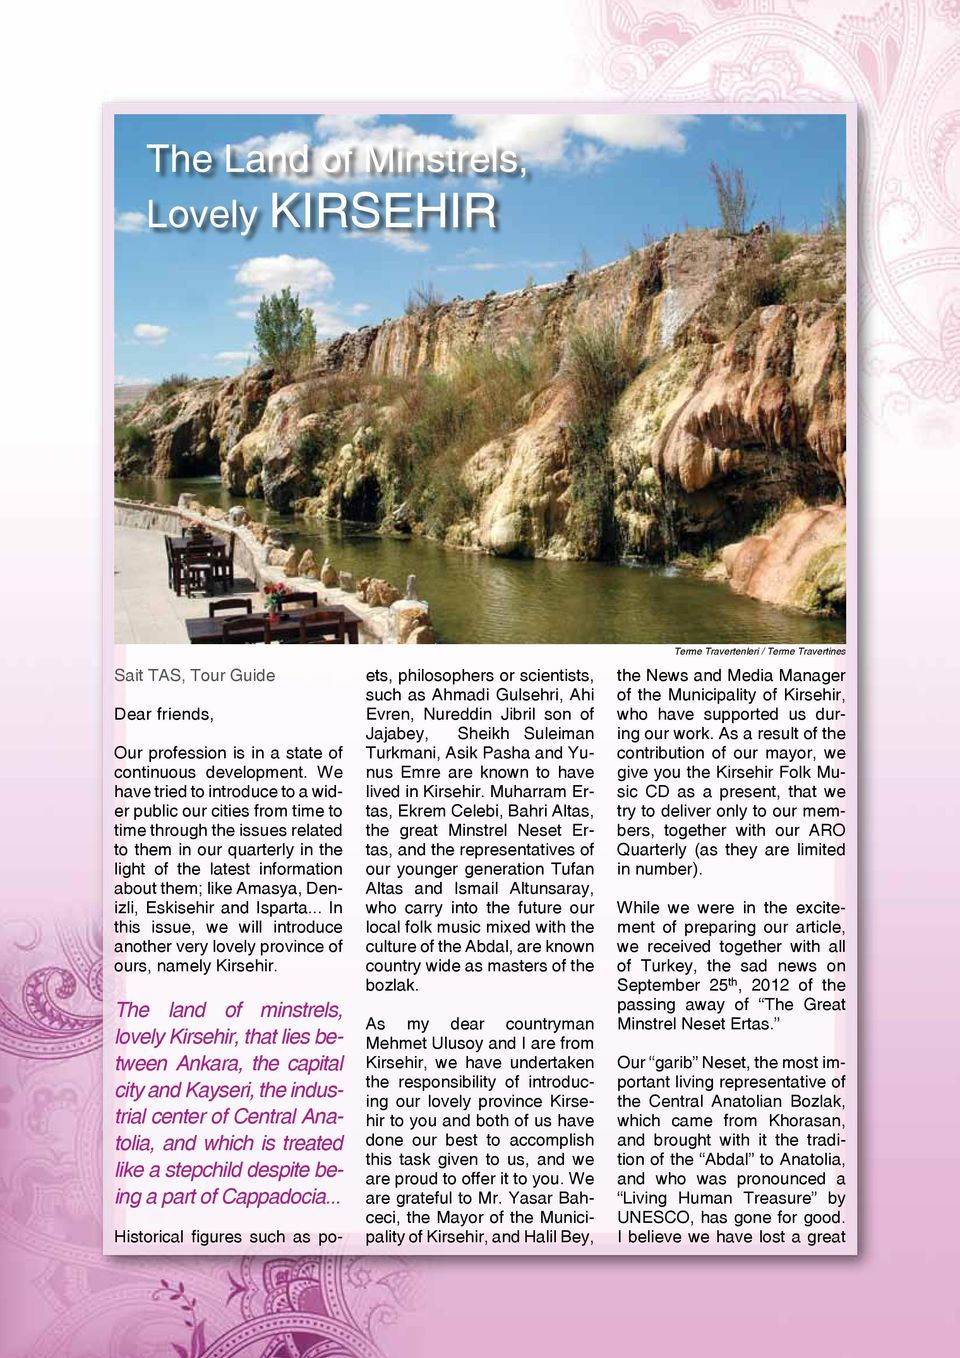 Eskisehir and Isparta... In this issue, we will introduce another very lovely province of ours, namely Kirsehir.